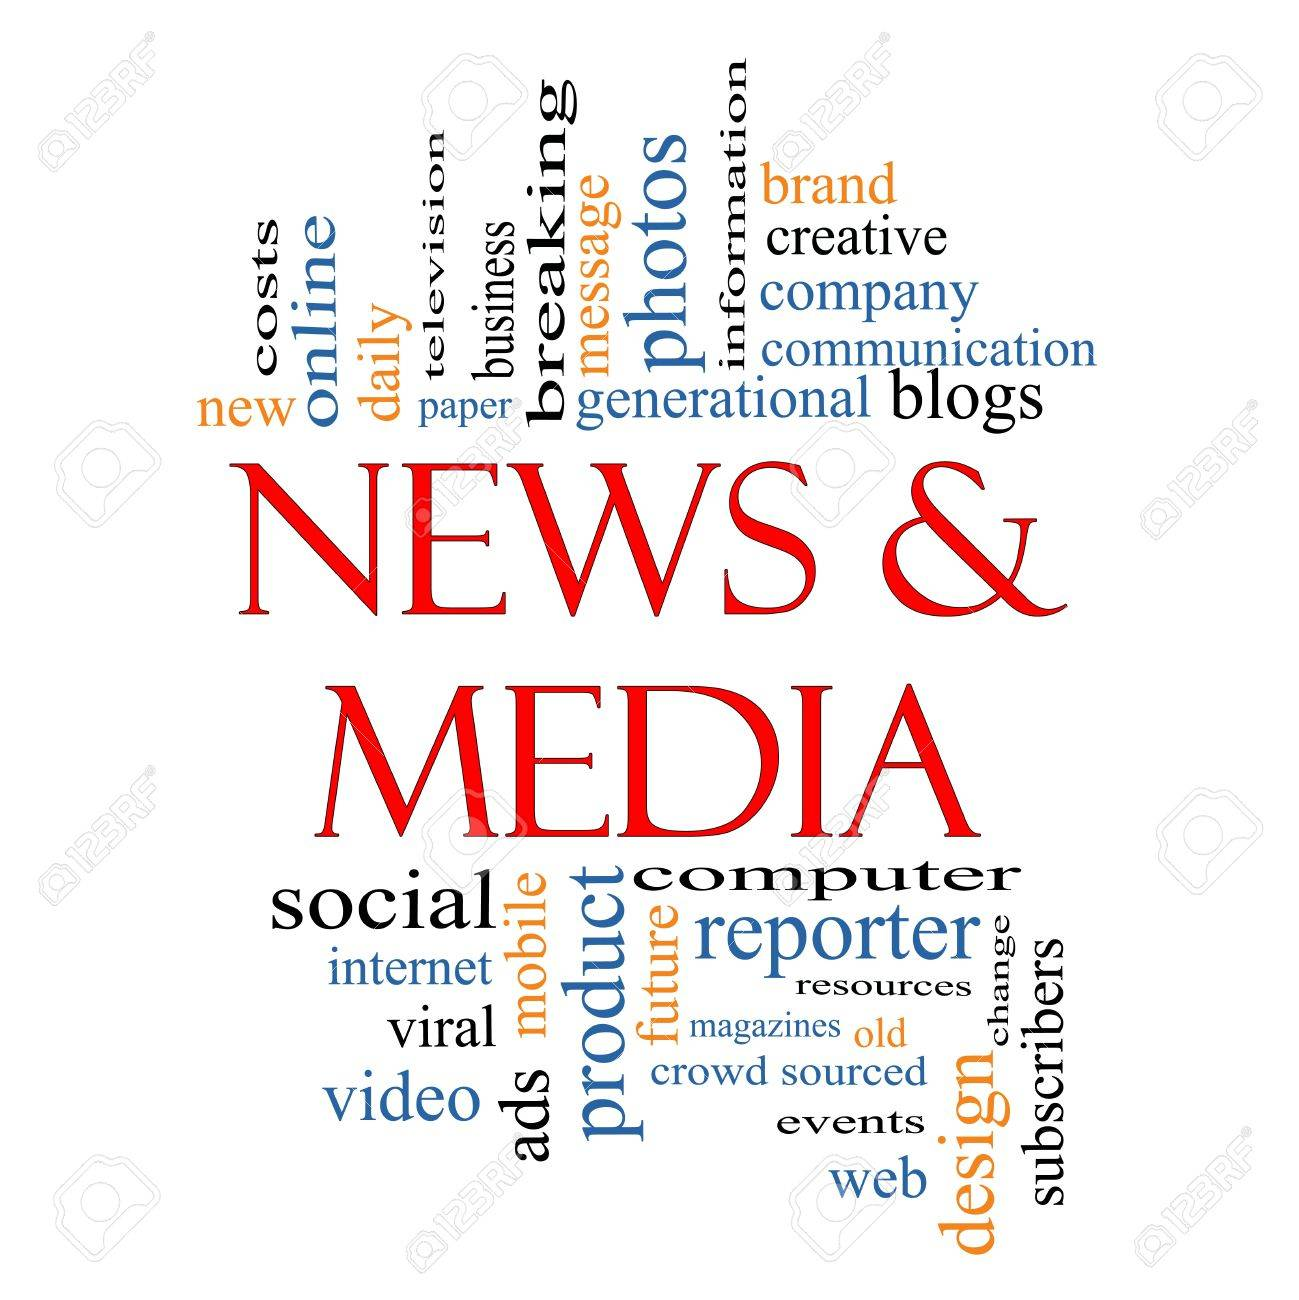 News and Media Word Cloud Concept with great terms such as television, viral, magazines, social, internet, ads, mobile, events and more. Stock Photo - 15028364